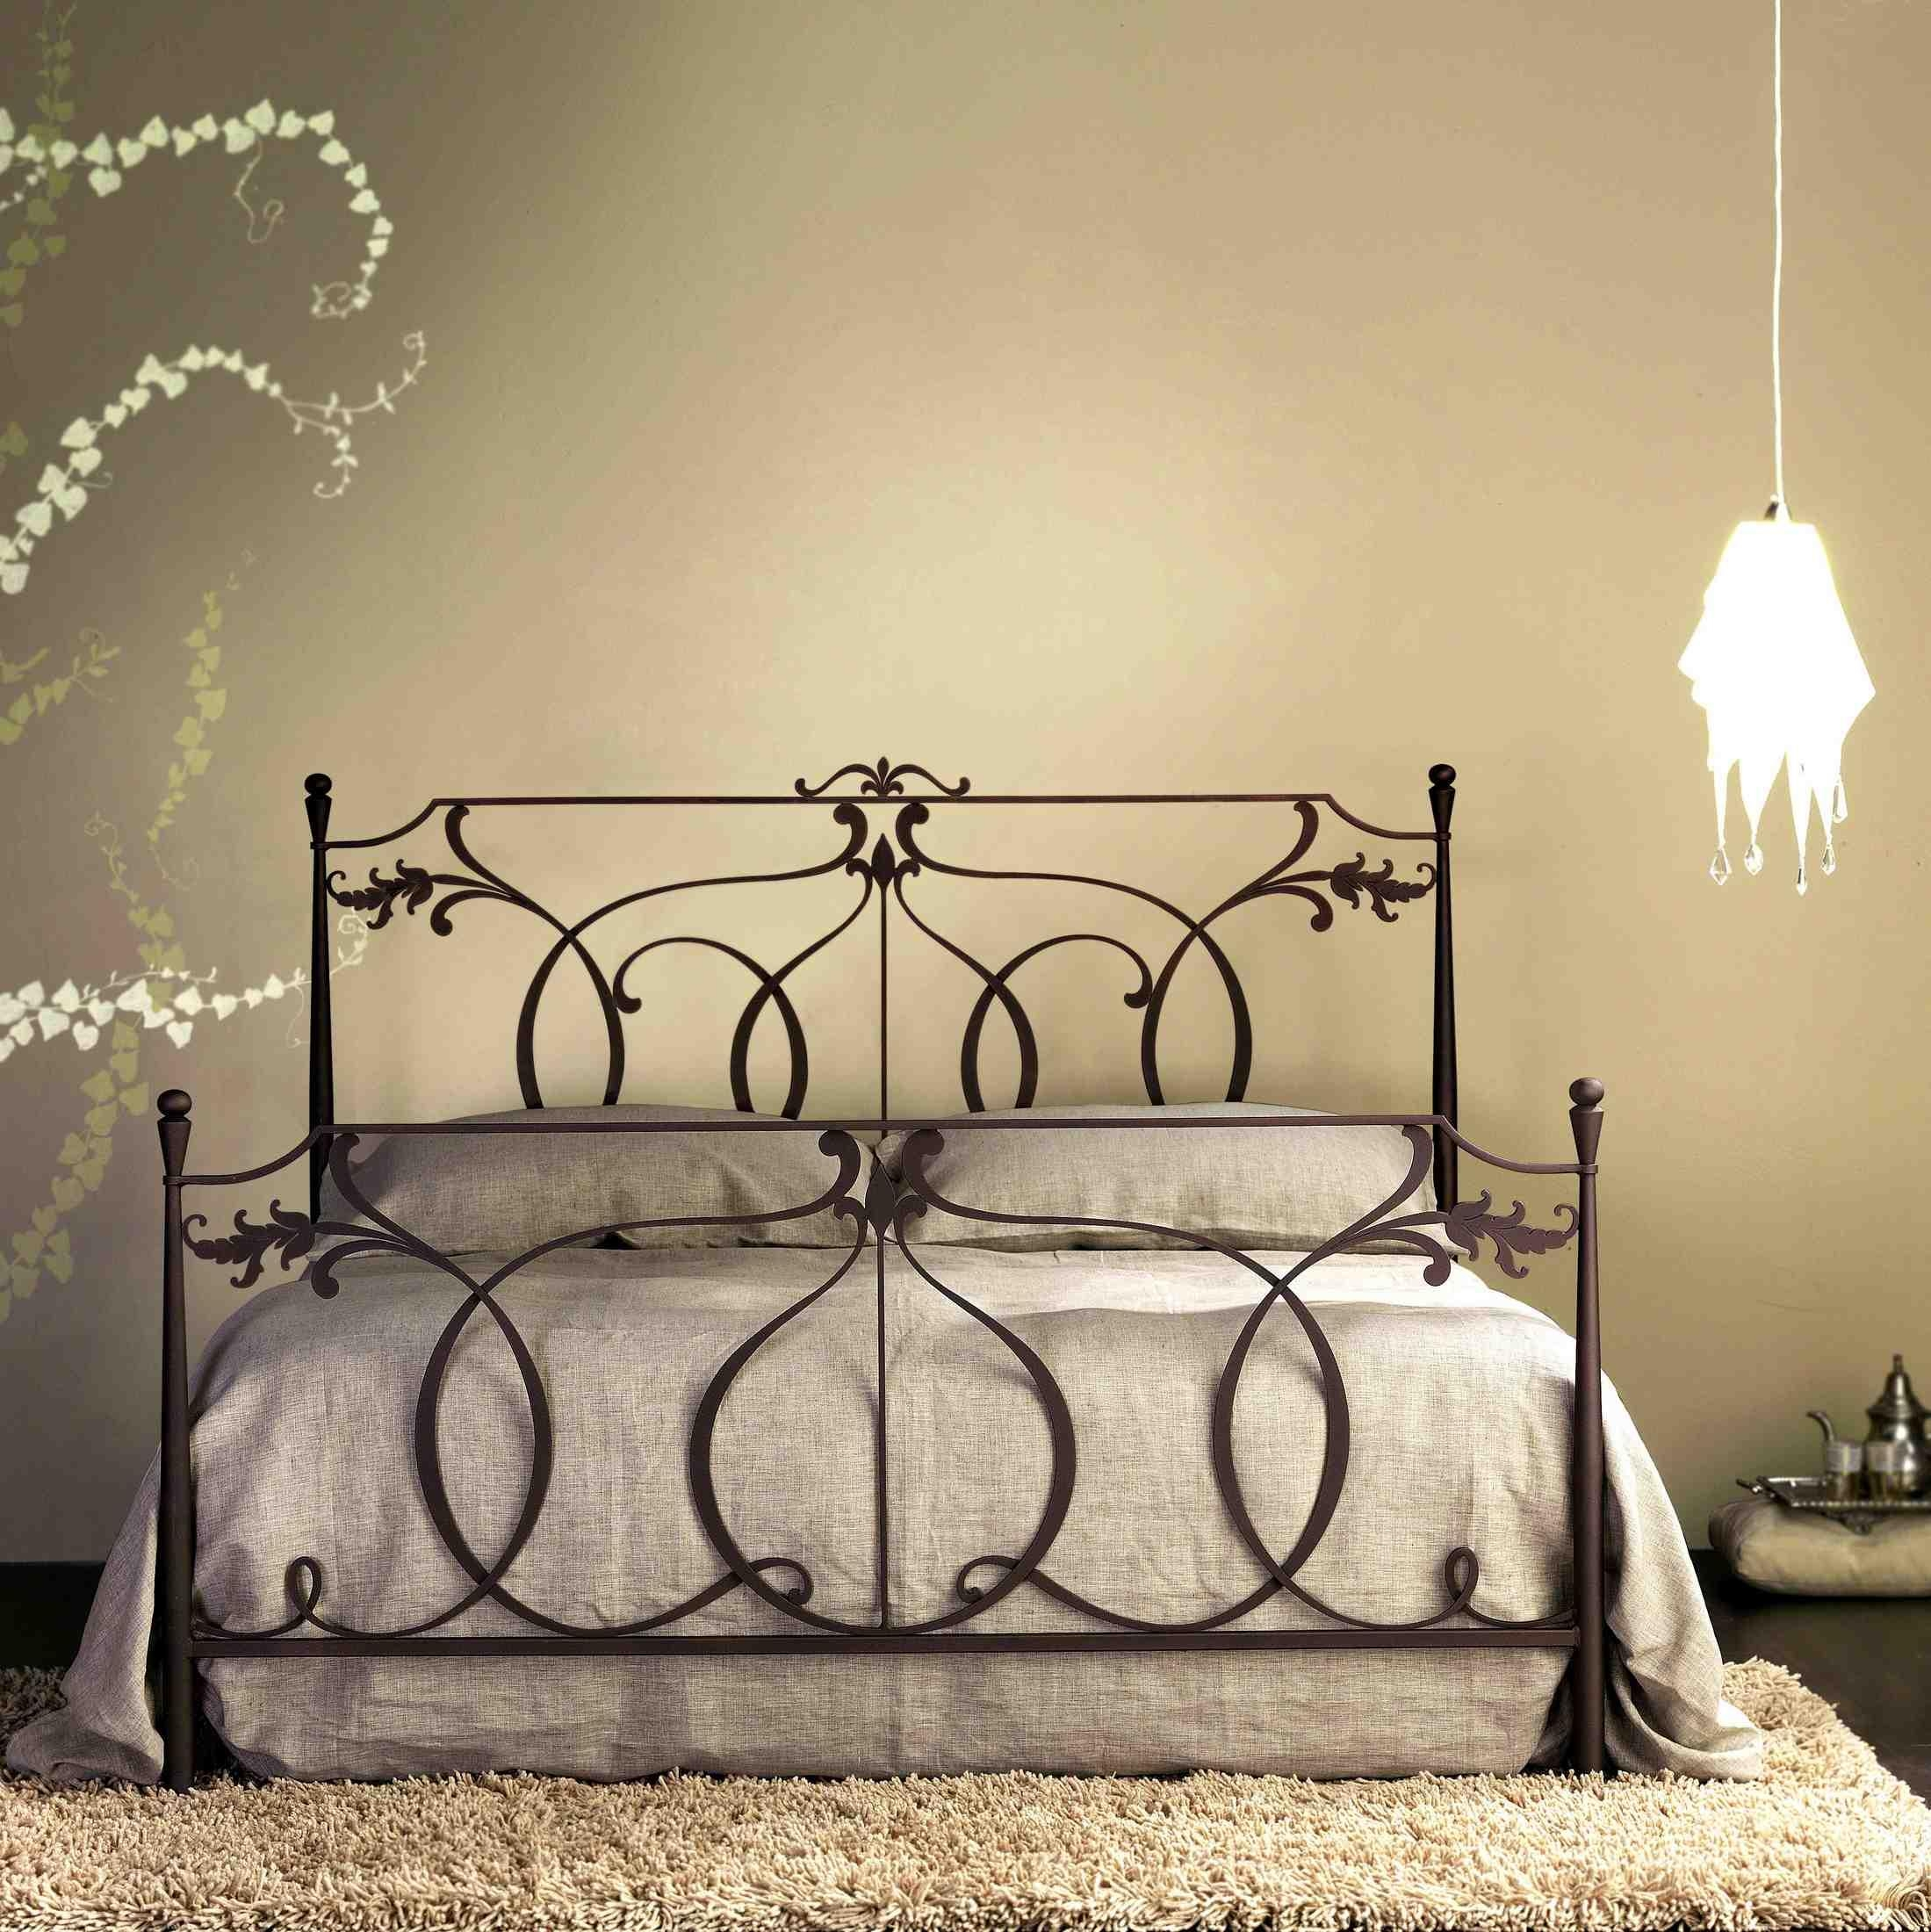 Bedroom : White Metal Wall Art Outdoor Metal Wall Art Kitchen For Black And White Italian Wall Art (Image 8 of 20)